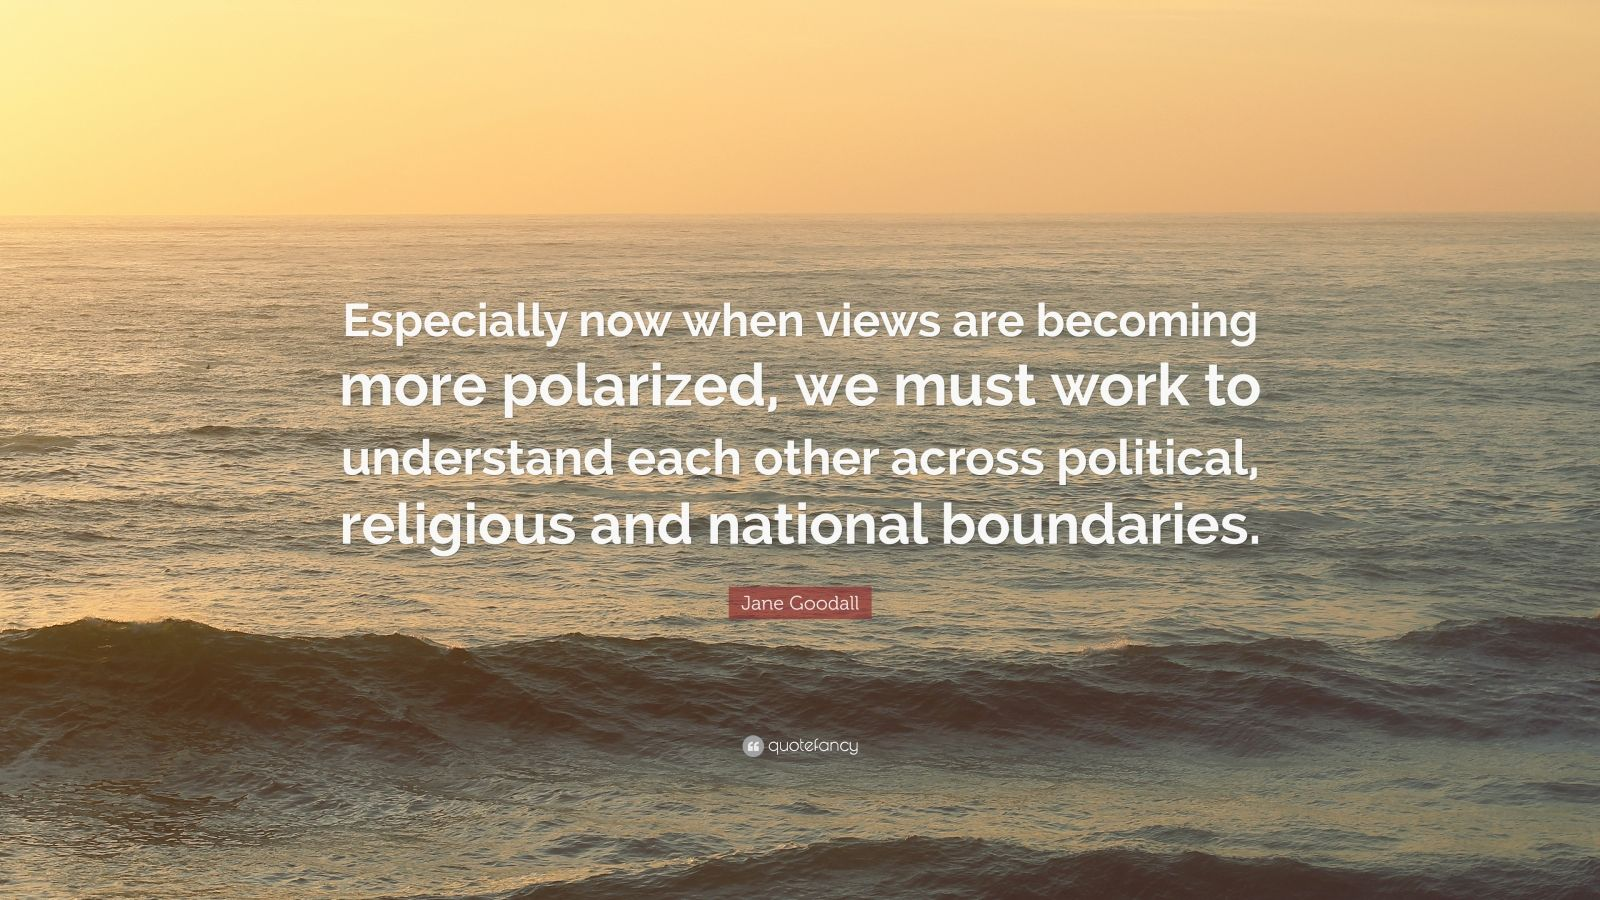 """Jane Goodall Quote: """"Especially now when views are becoming more polarized, we must work to understand each other across political, religious and national boundaries."""""""